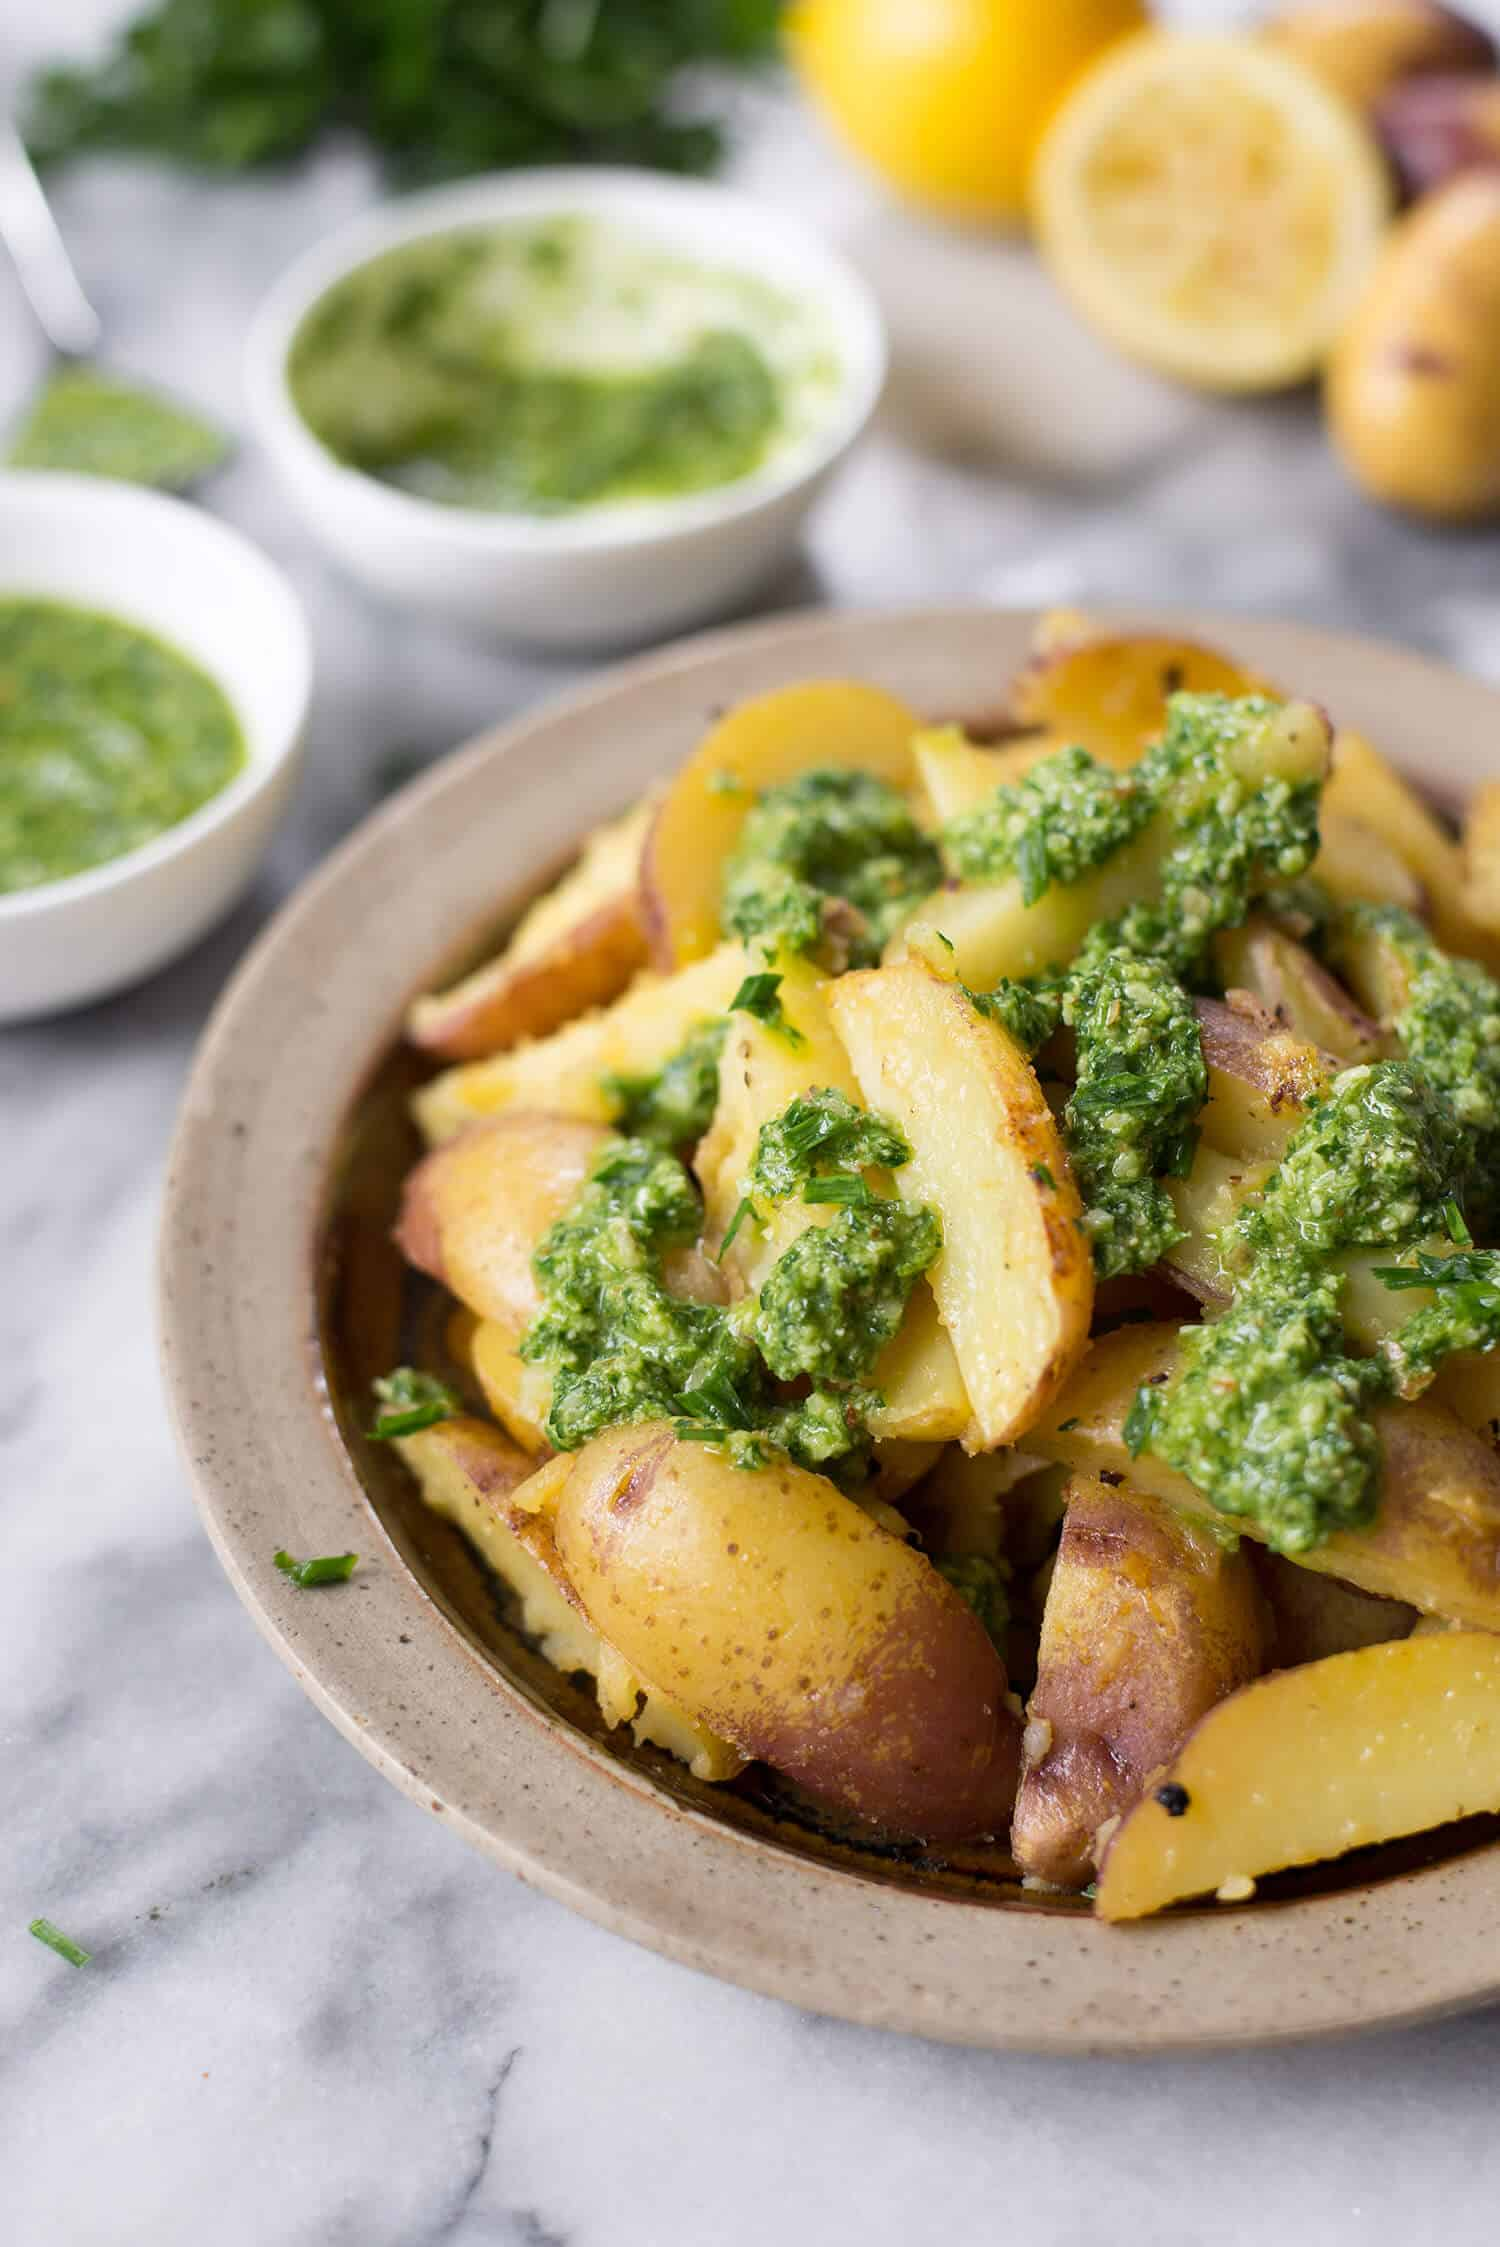 Lemon Pan-Fried Potatoes with Chive Pesto. The perfect side dish for the holidays. Vegan and gluten-free.   www.delishknowledge.com